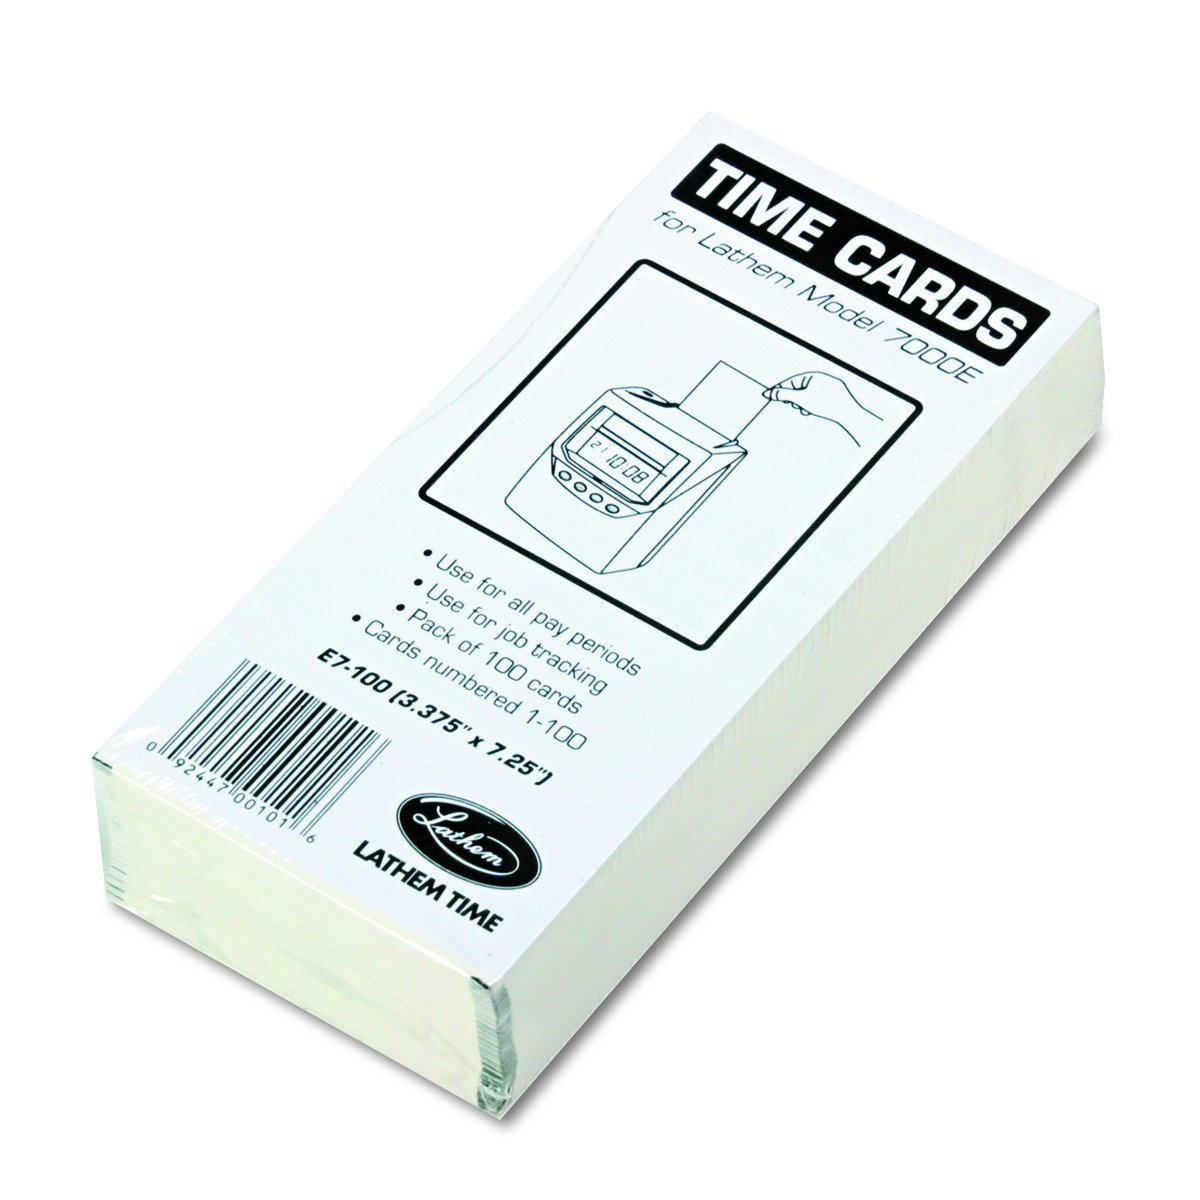 Lathem Time E7-100 Universal 2-Sided Time Cards For 7000E Time Recorder, Numbered 1-100, 100/Pack E7100